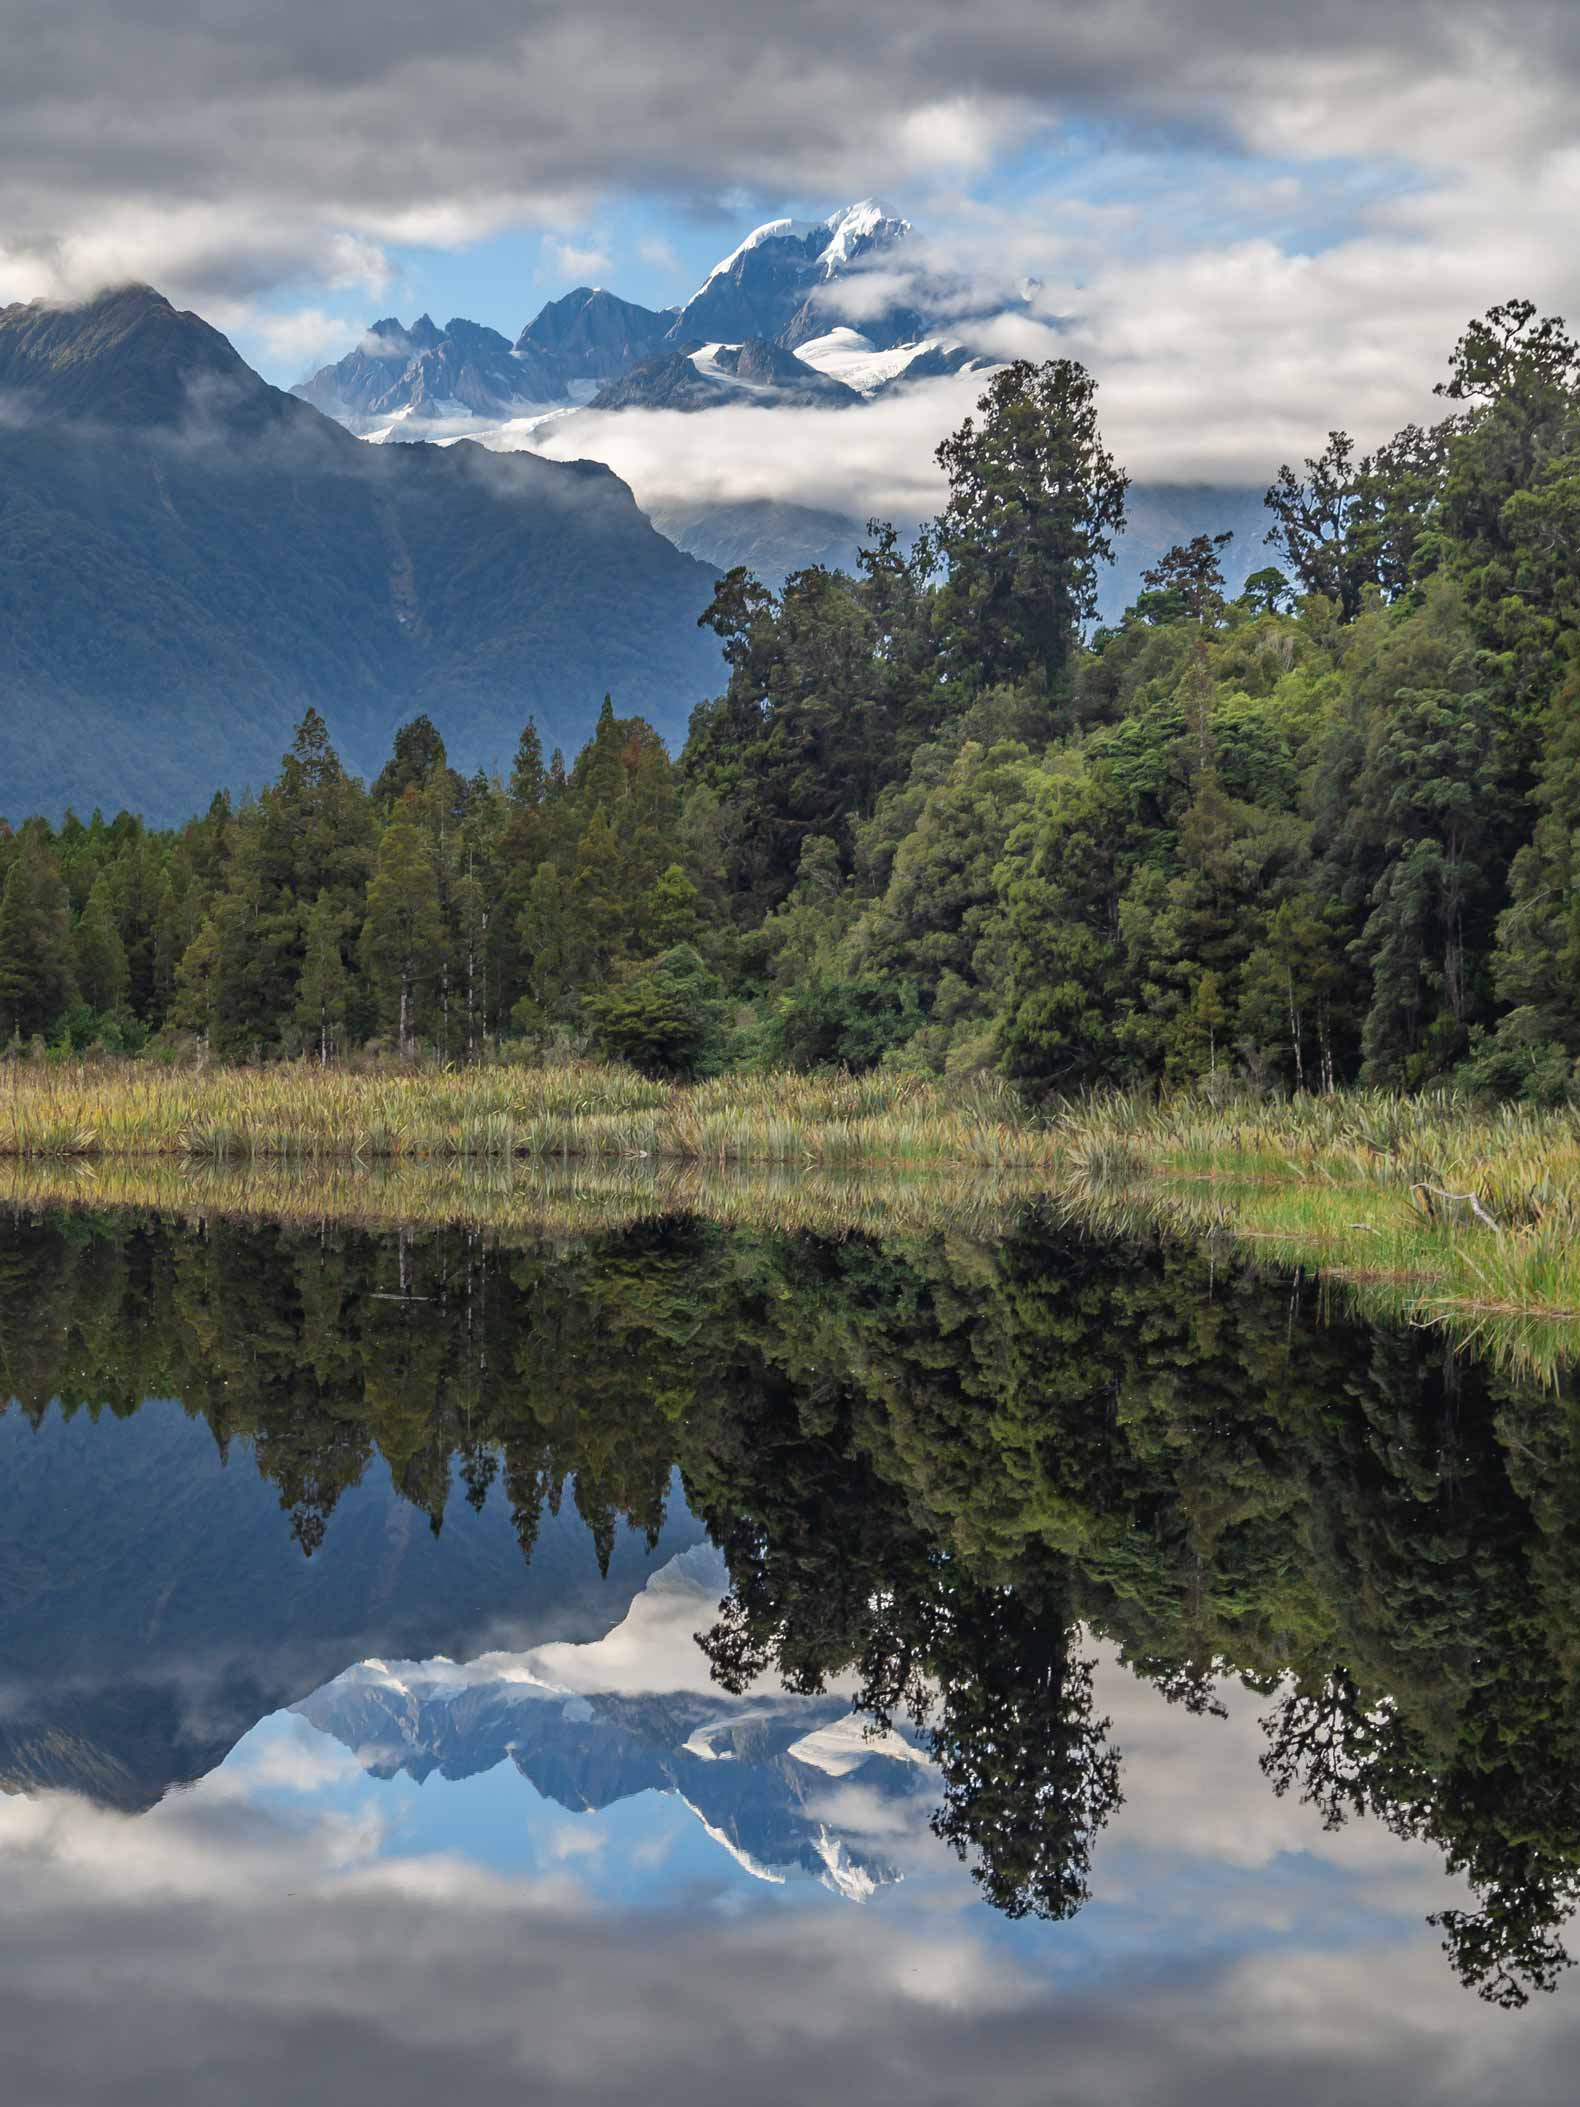 The image of Fox glacier reflected in Lake Mattheson, New Zealand.